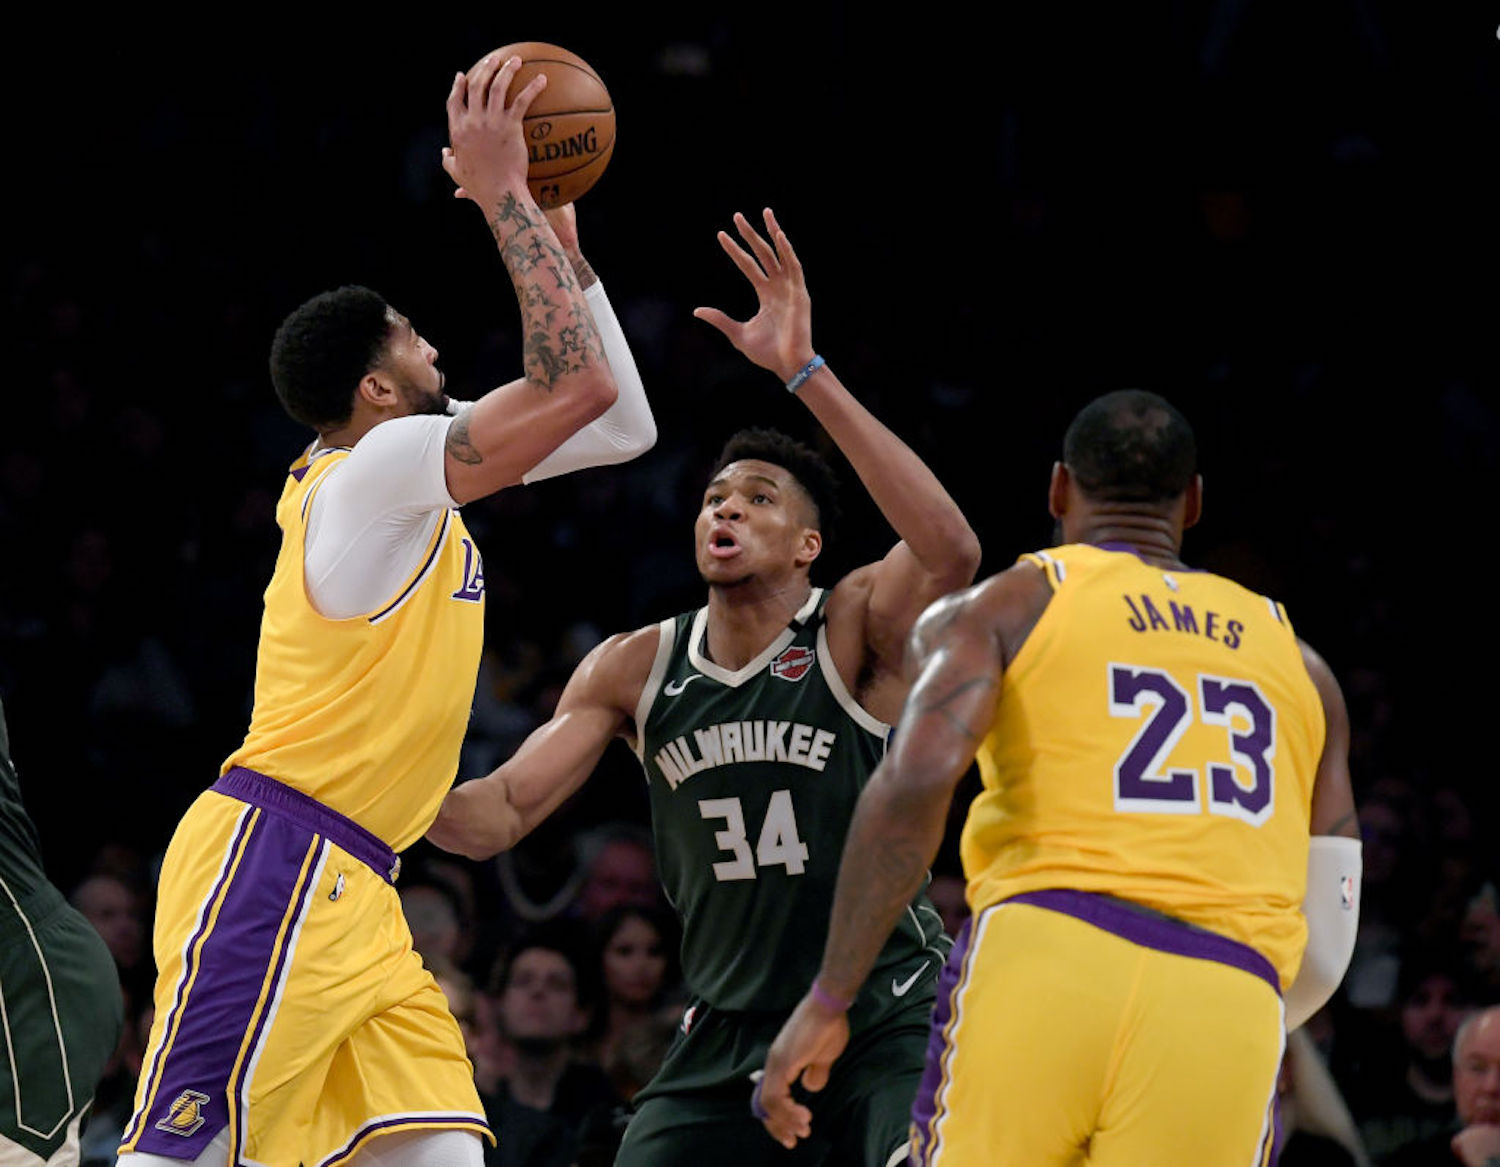 Anthony Davis has yet to sign an extension with the Lakers, but that could be apart of the team's master plan to sign Giannis Antetokounmpo.